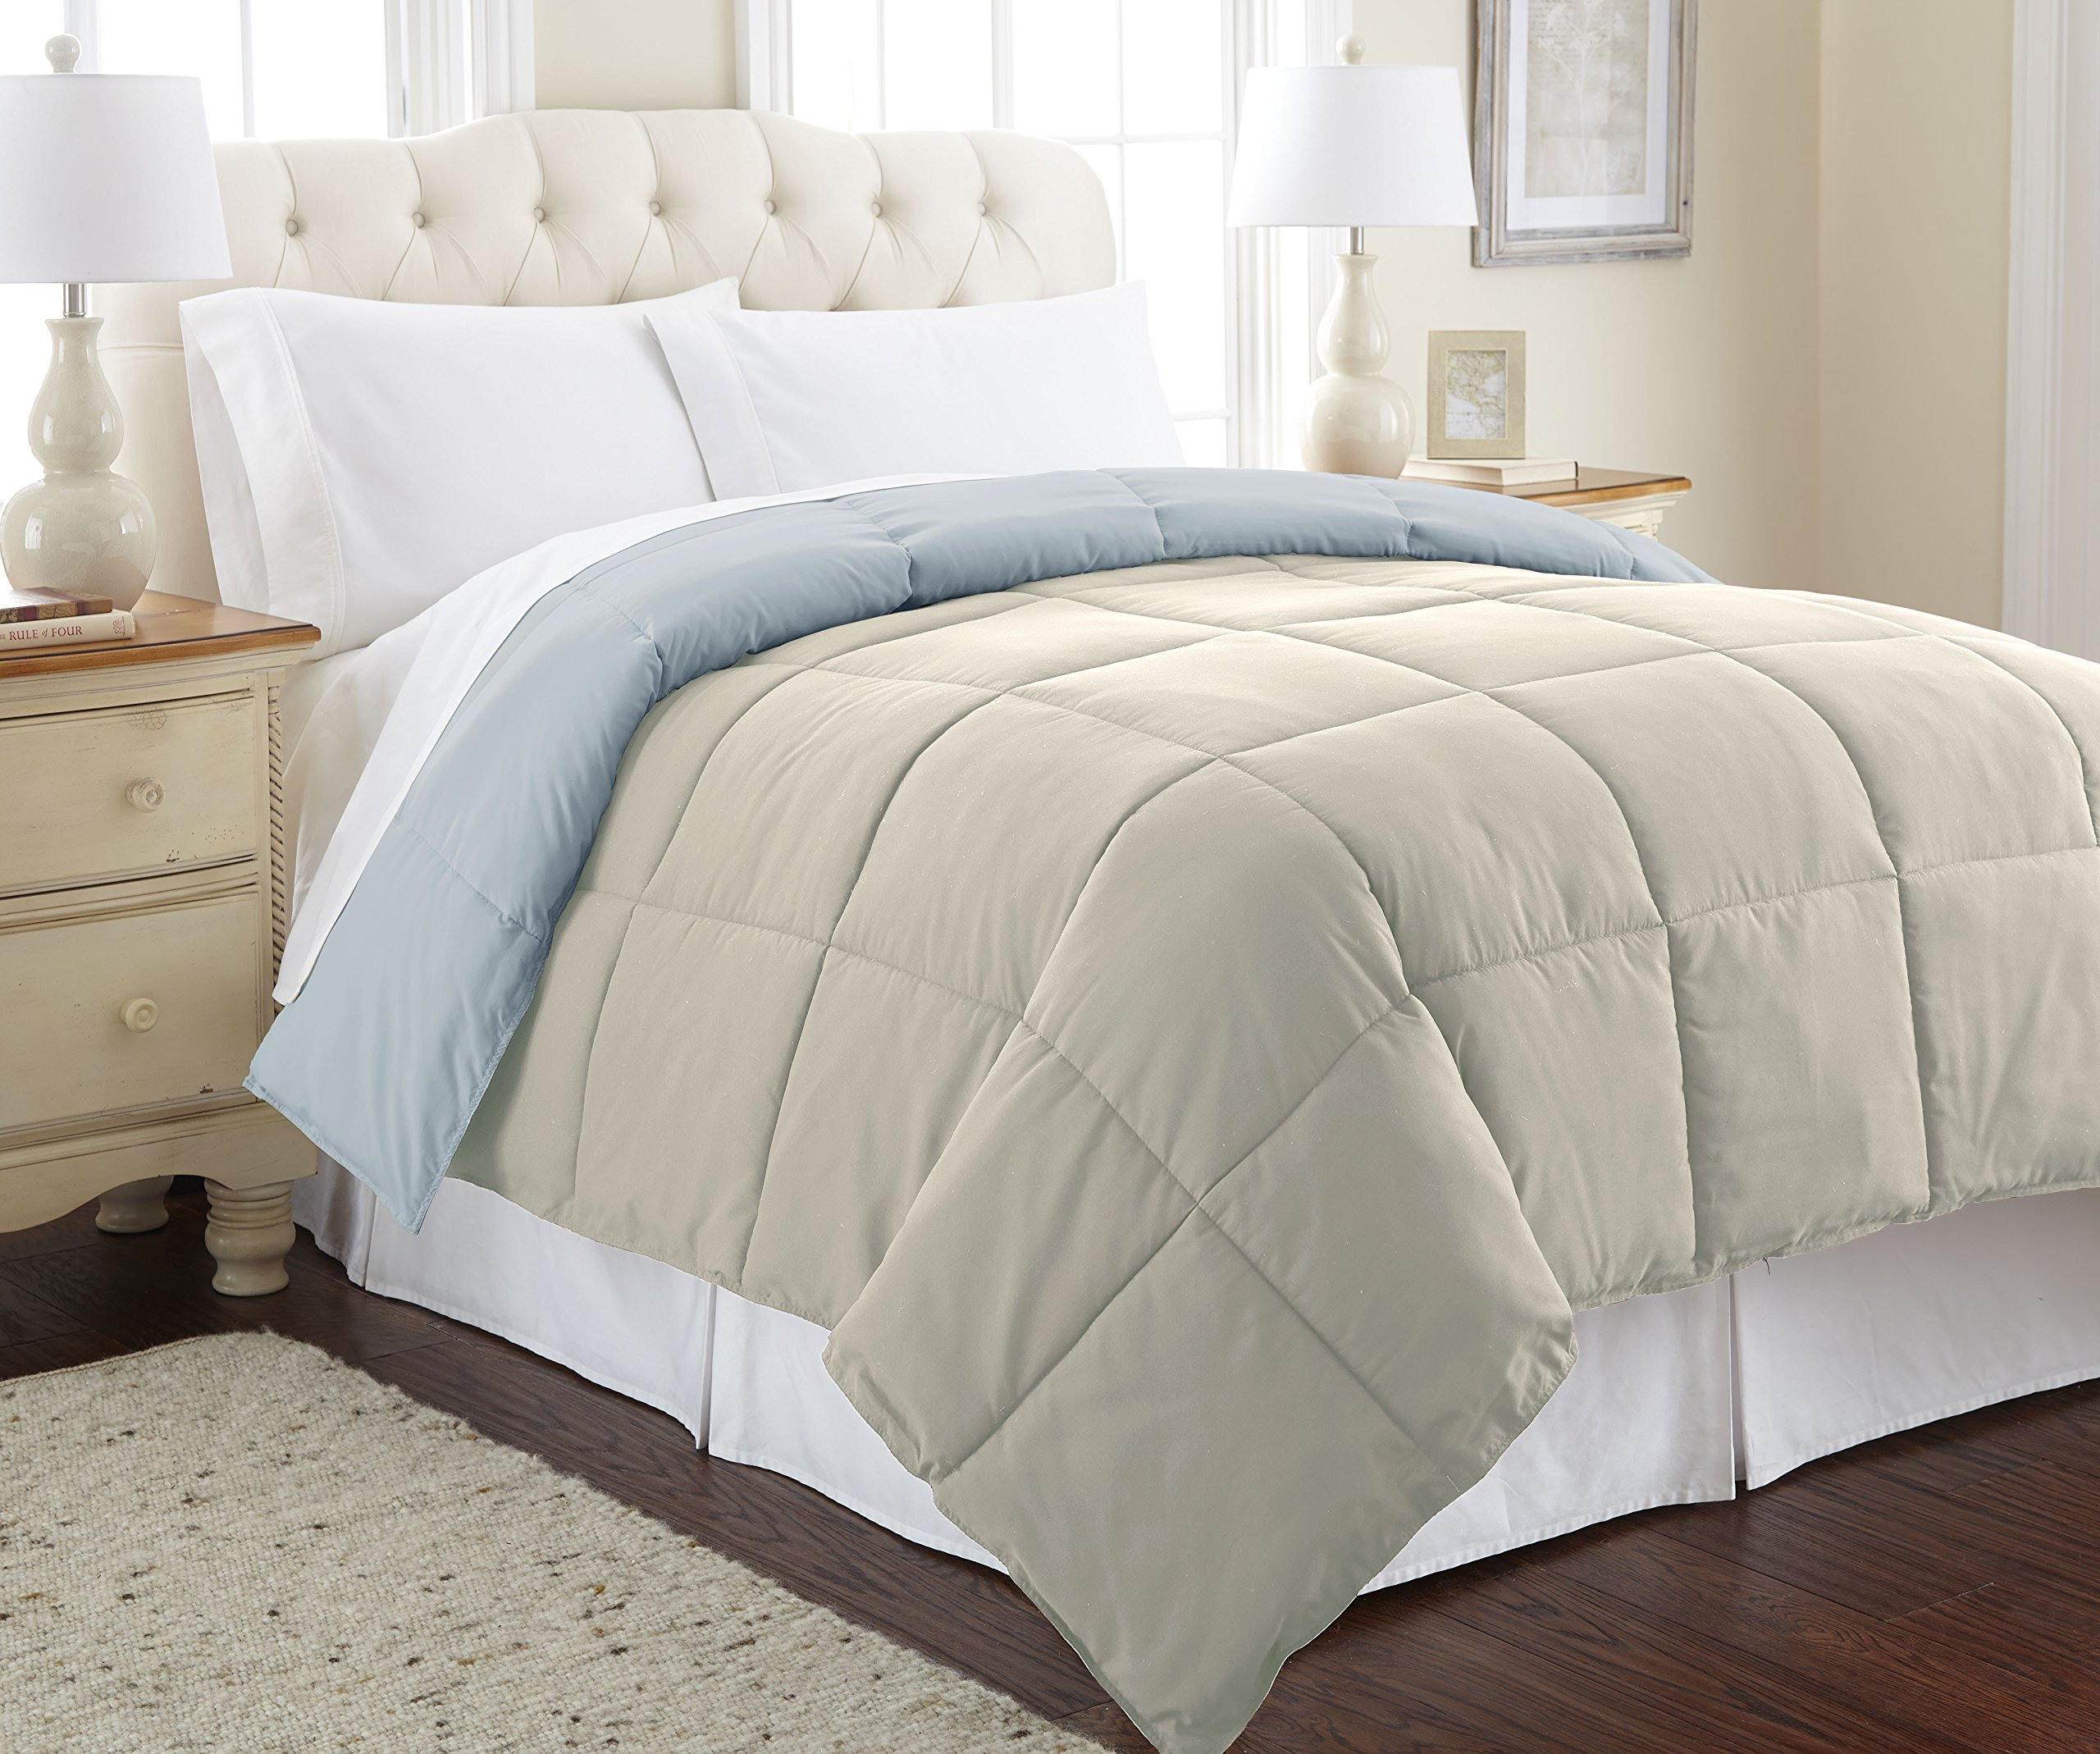 bed to reviews count buy a down direct how bath depot wayfair thread lightweight comforter linen pdx